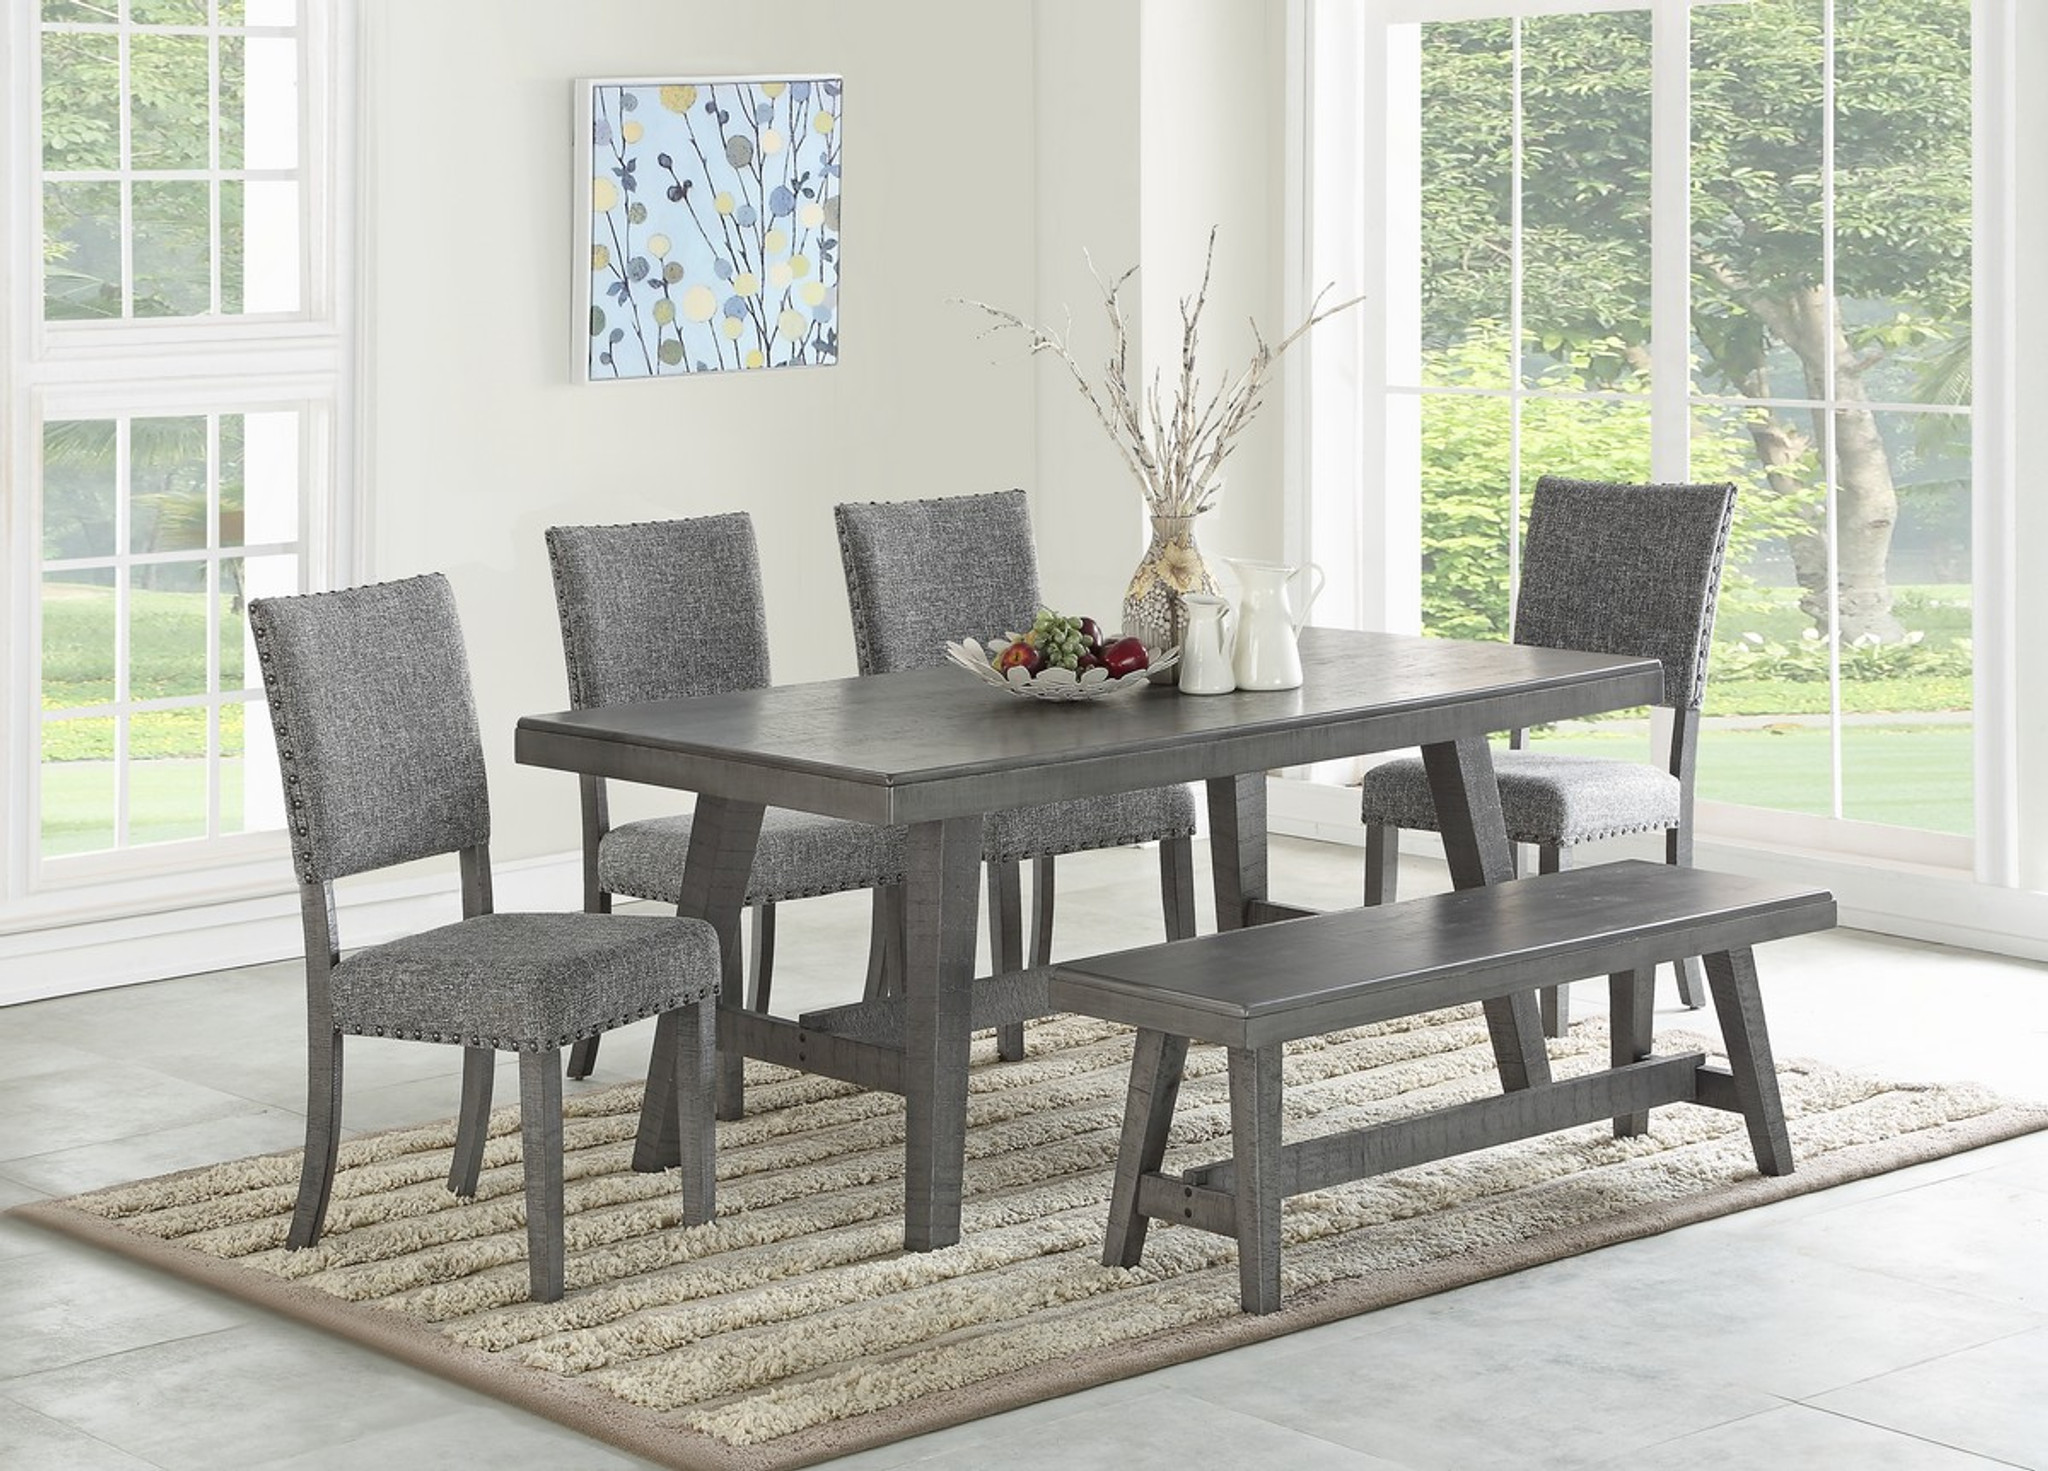 5PCS AMEDEO DINING TABLE SET IN GREY